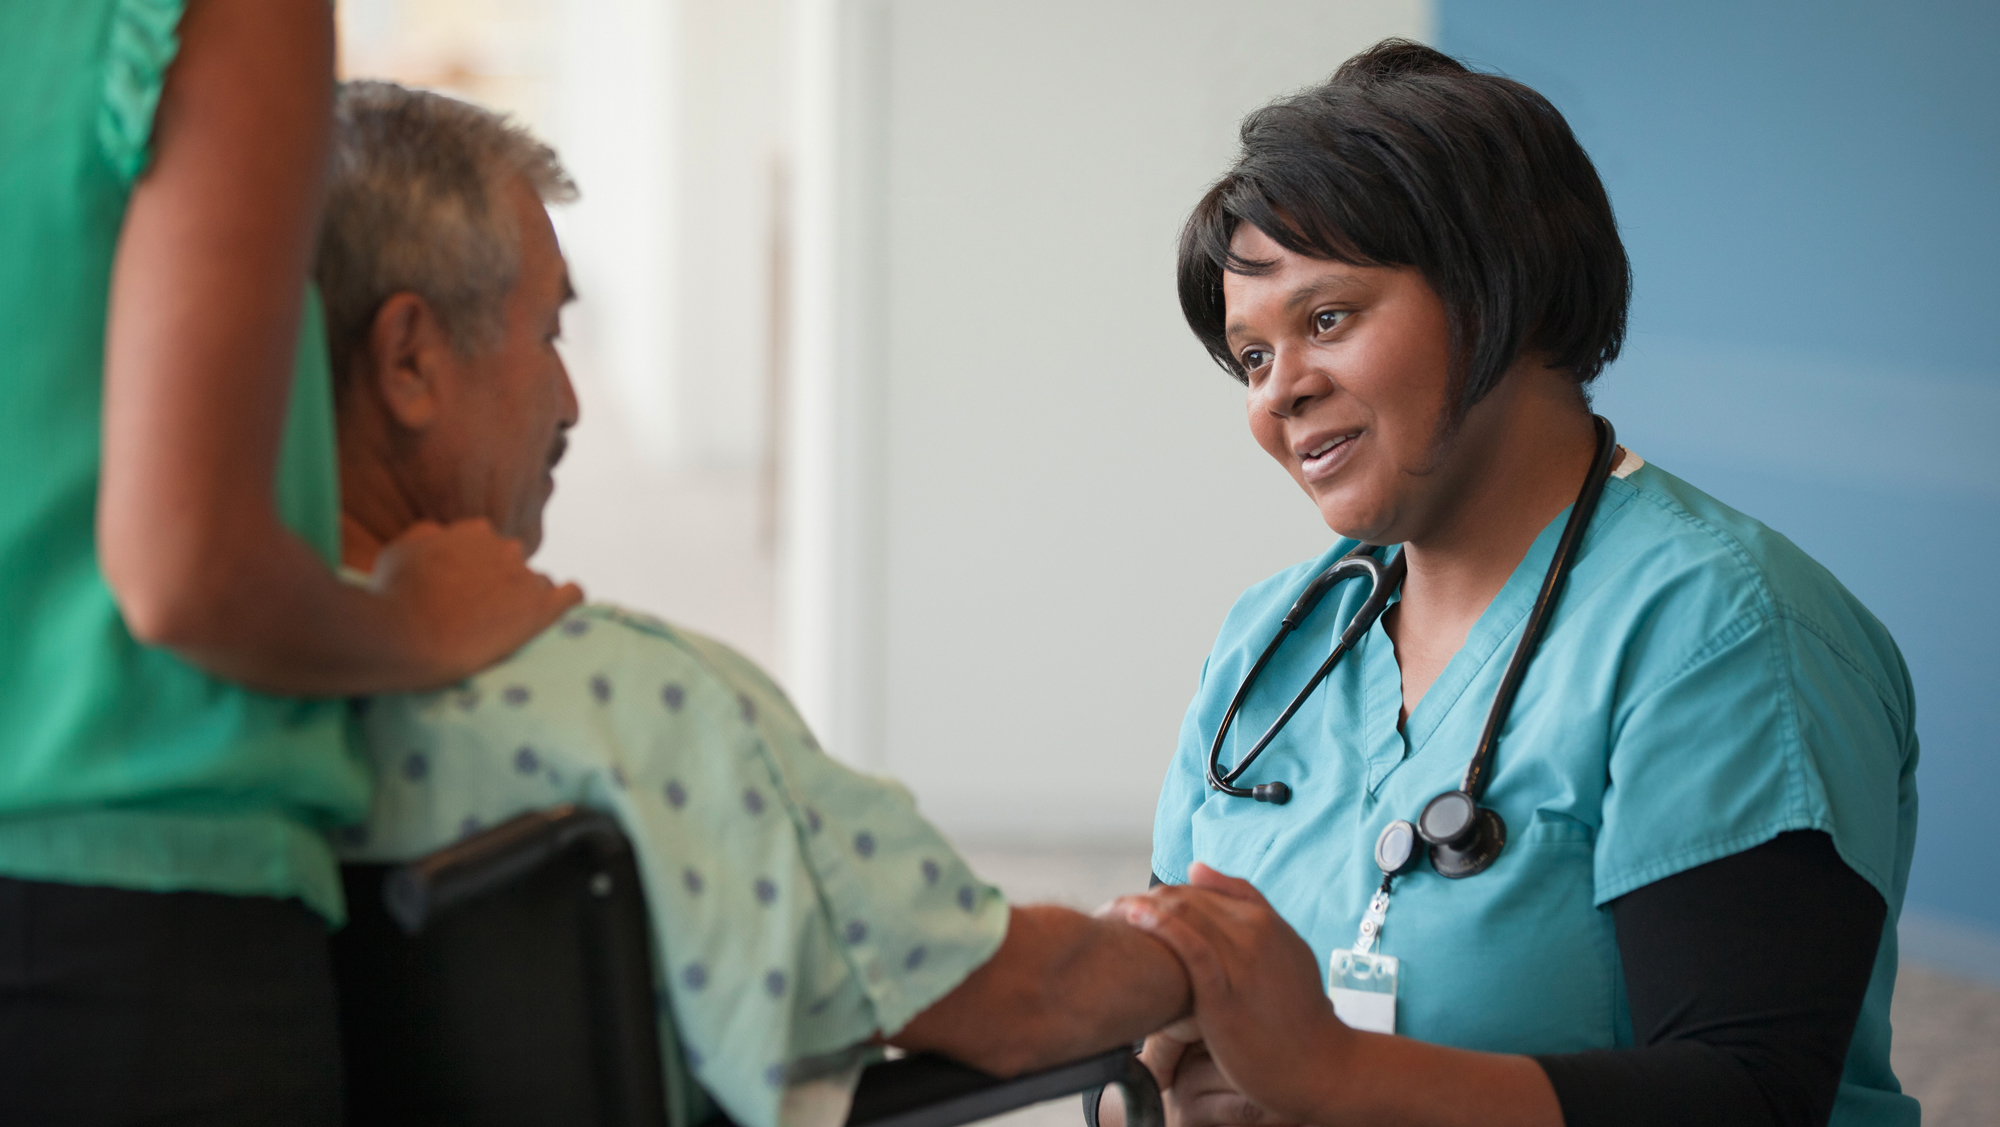 importance of nurse patient relationship At best, nurses and patients develop a special bond based on trust, compassion, and mutual respect the nurse-patient relationship can pro.